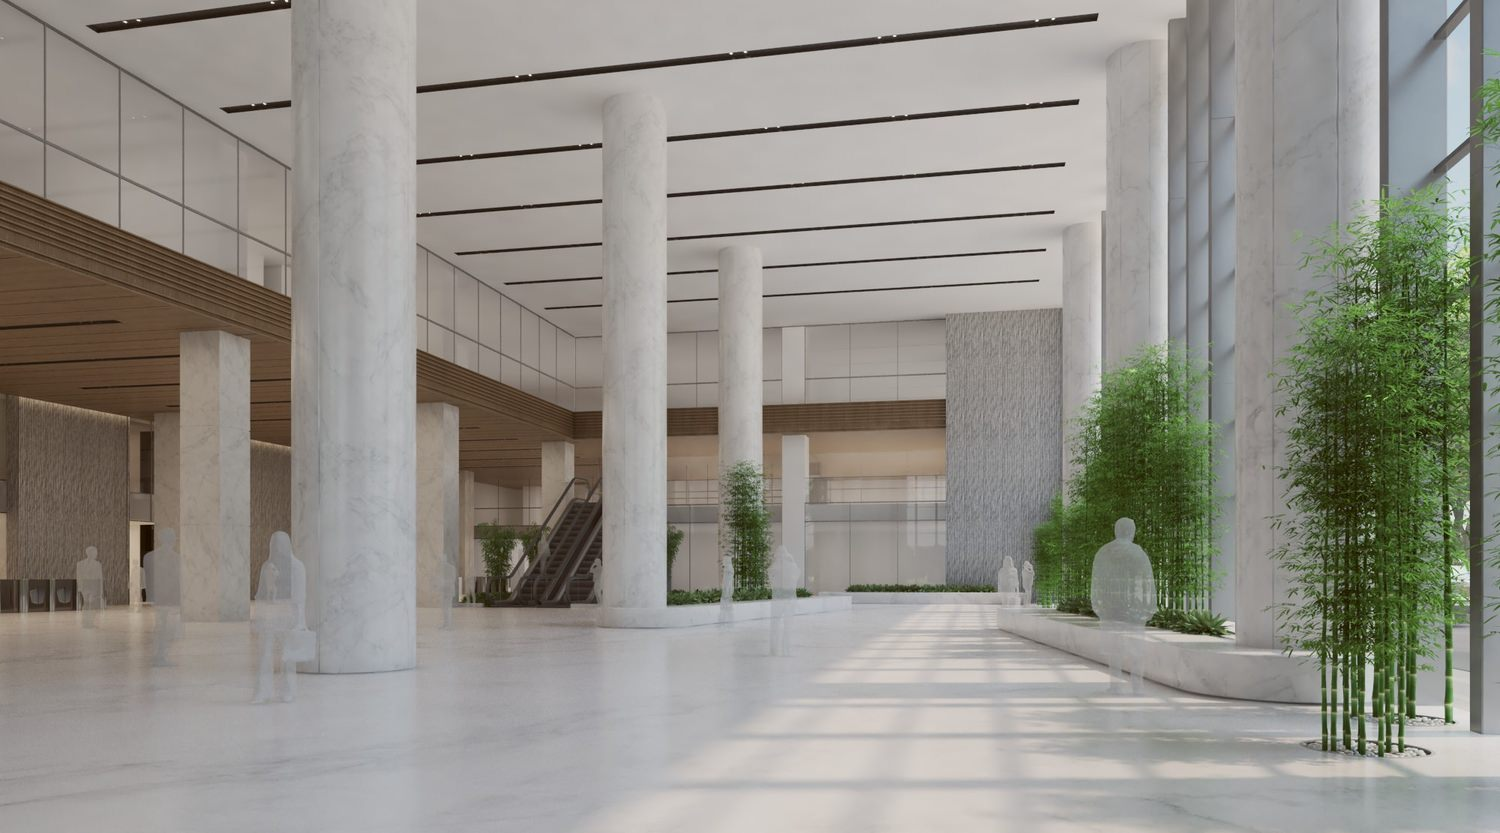 Large lobby with marbled columns and tiled floors that is within a big building.